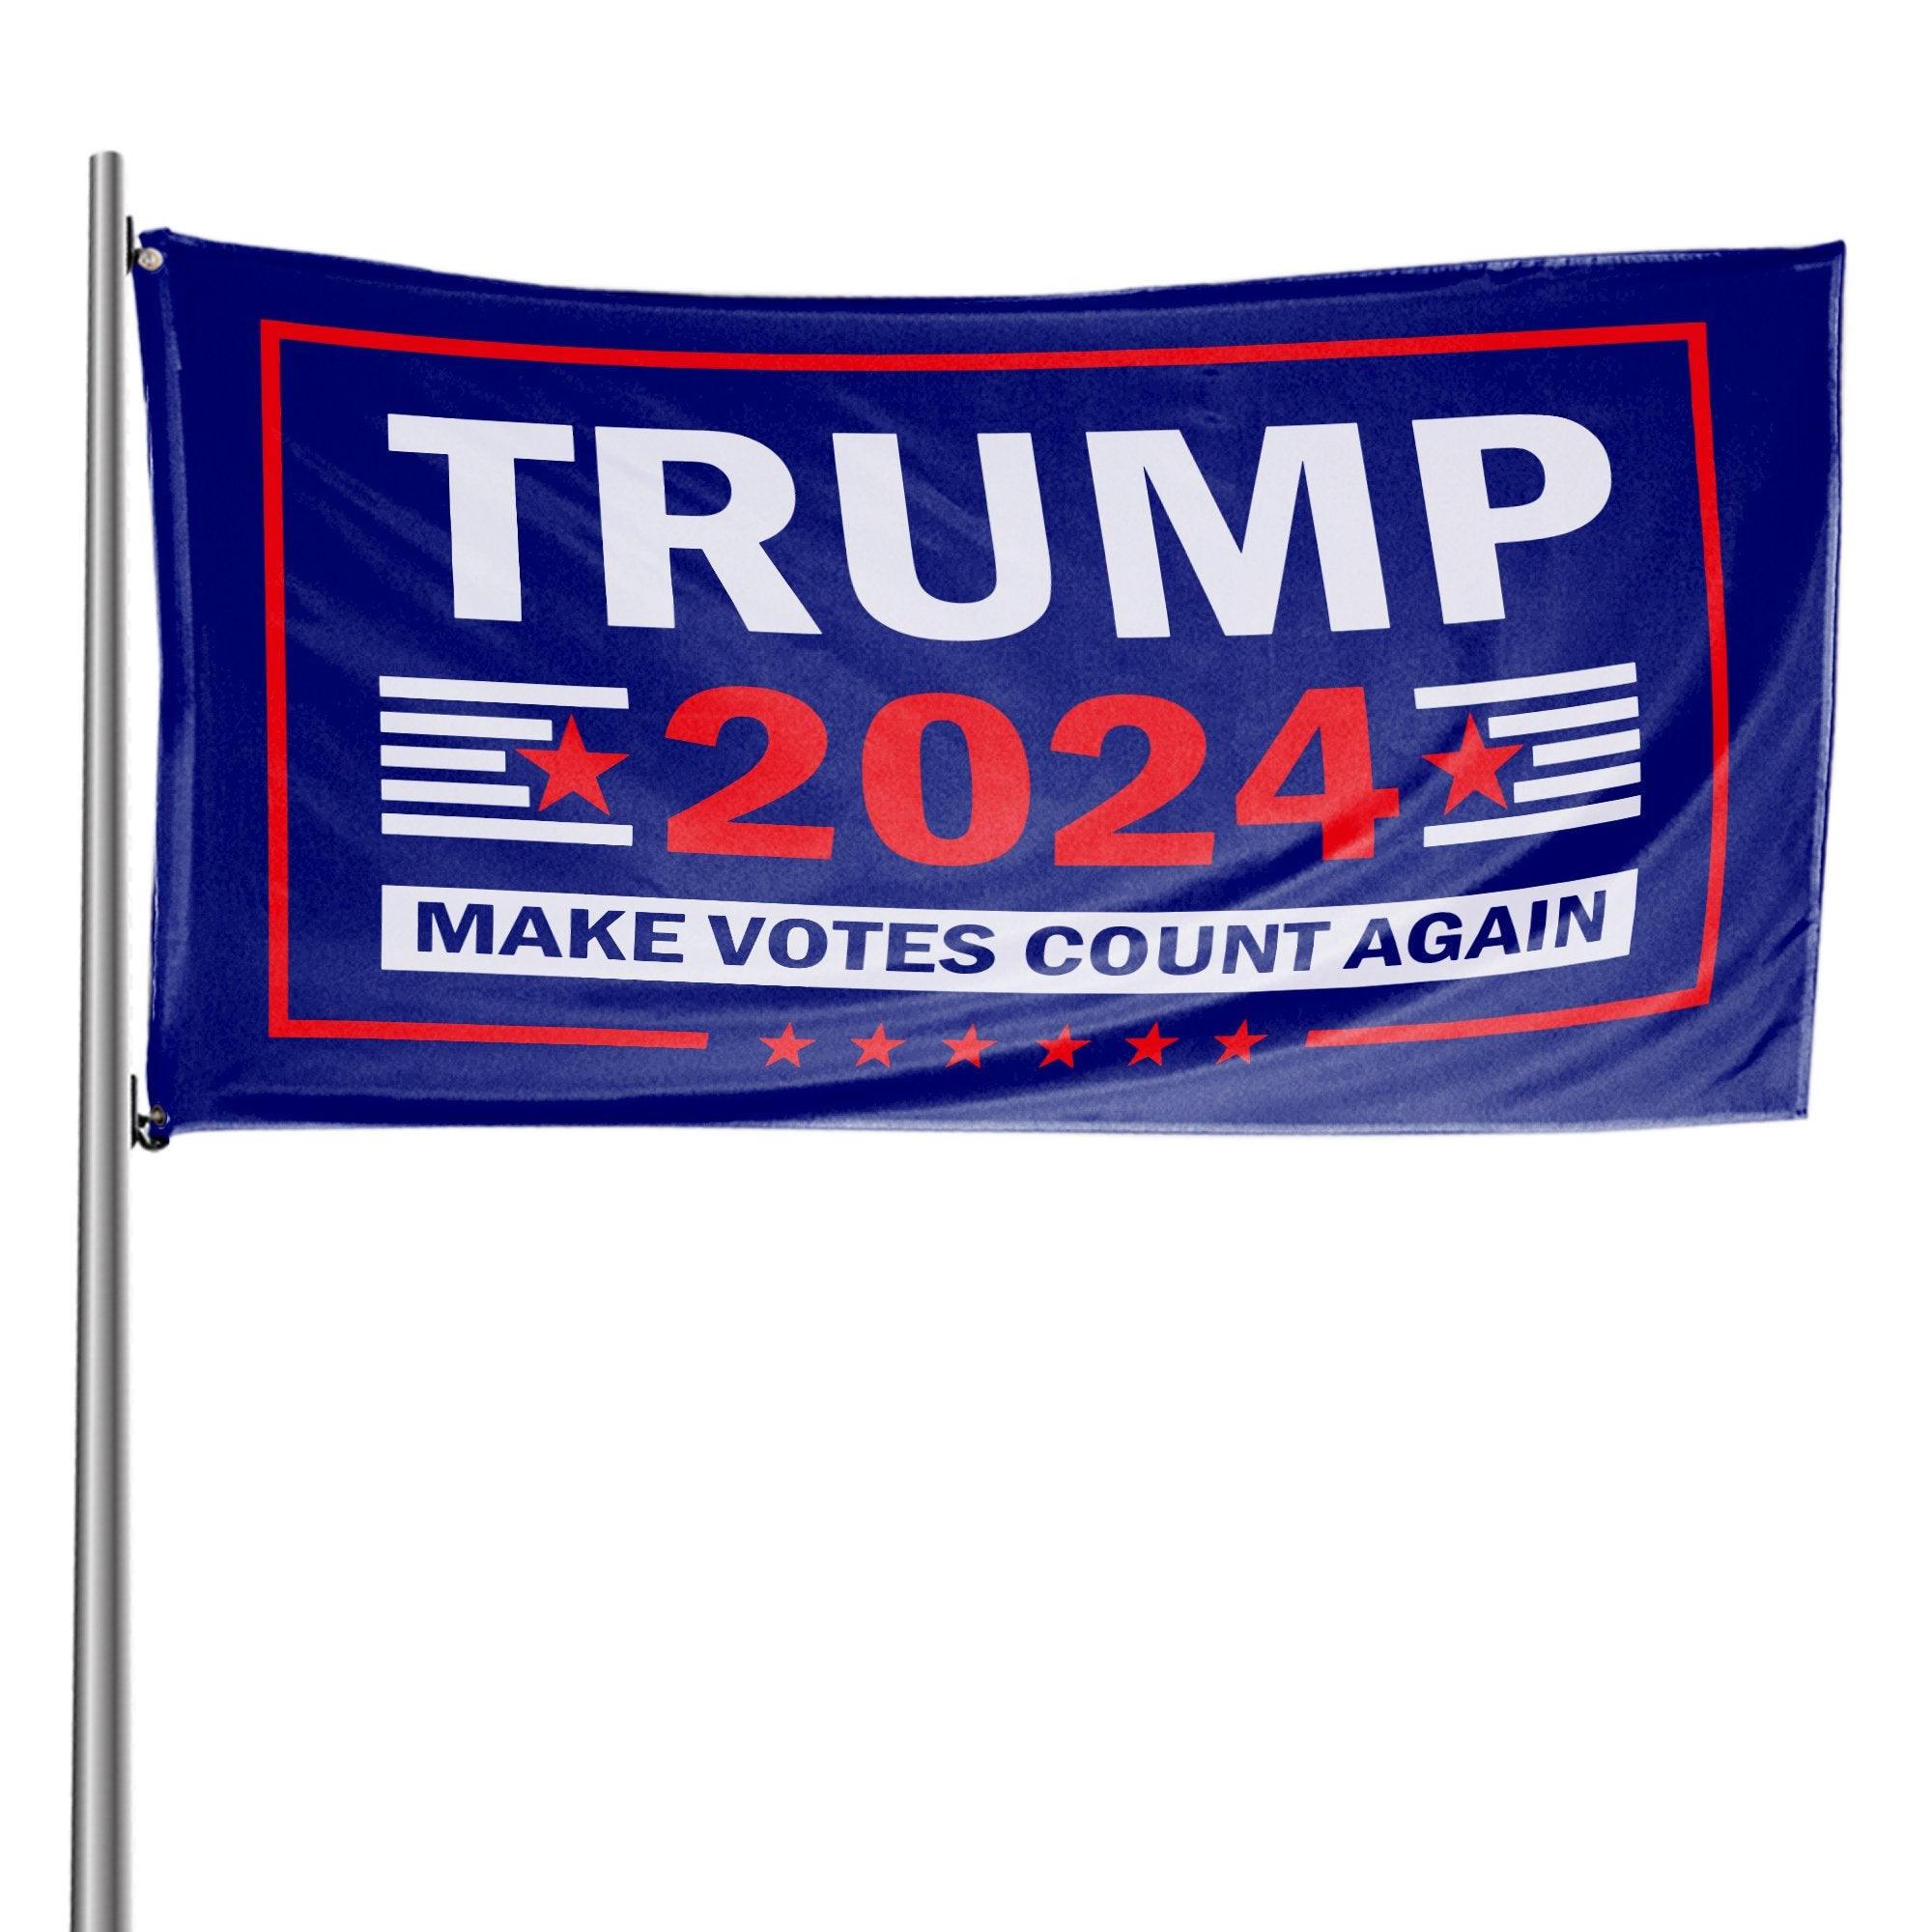 Trump 2024 Make Votes Count Again & Kentucky For Trump 3 x 5 Flag Bundle